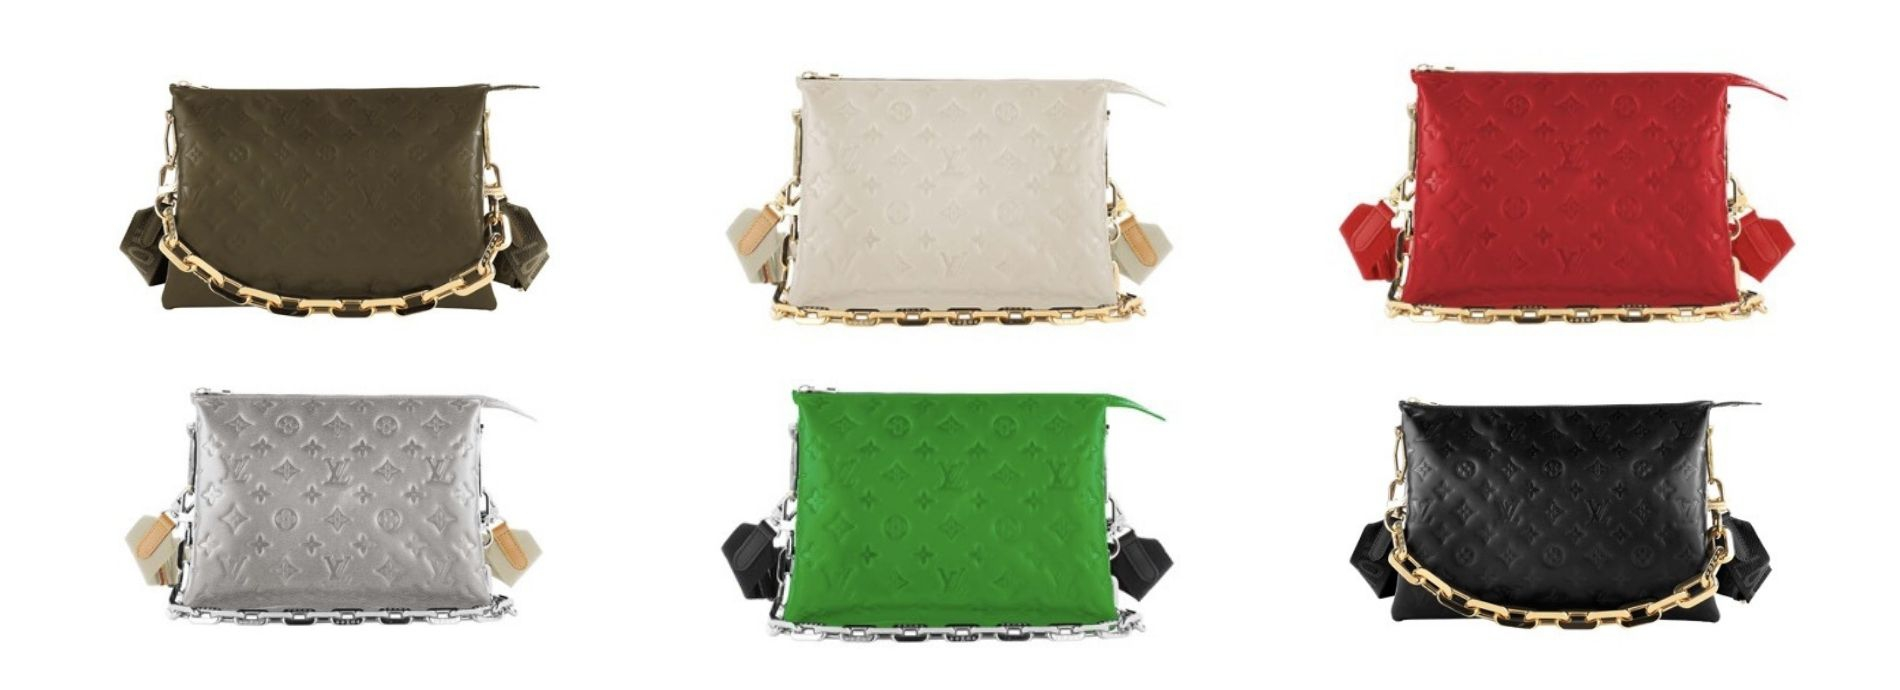 Coussin Bags / Foto: Courtesy of Louis Vuitton